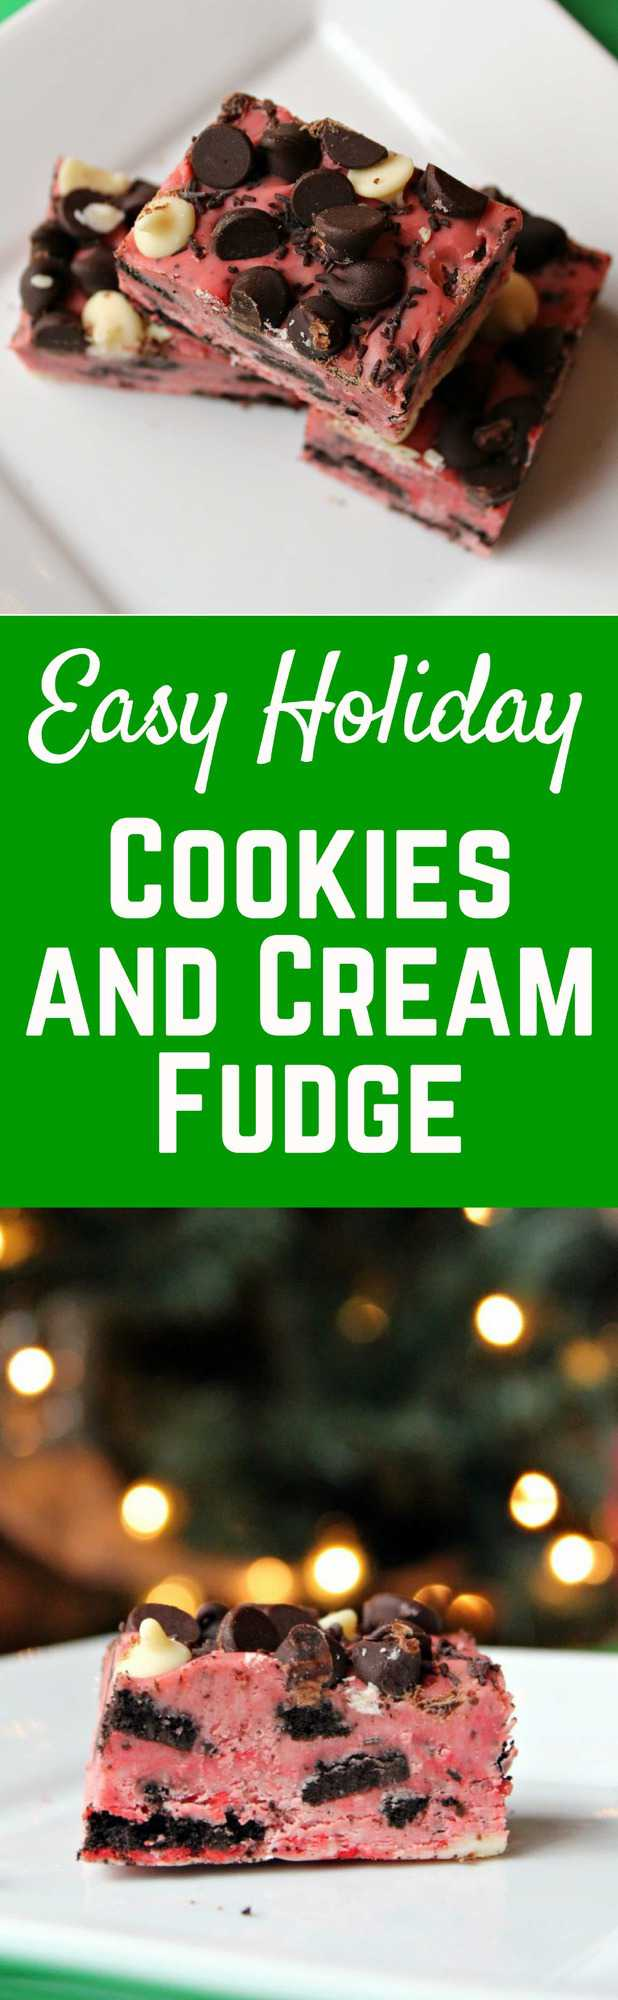 Searching for a last minute goodie for your cookie plate? This cookies and cream fudge is ridiculously easy and so very festive!